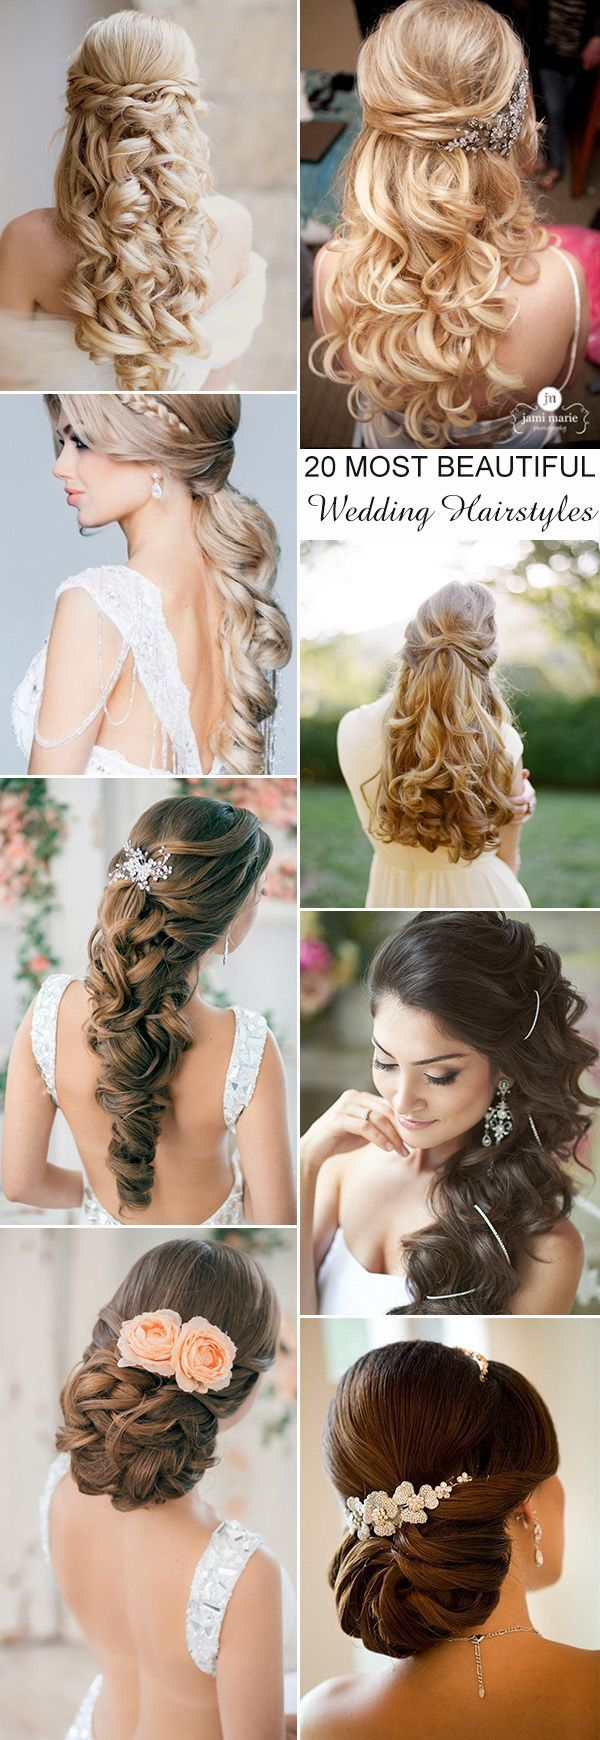 Groovy 1000 Ideas About Elegant Wedding Hairstyles On Pinterest Hairdo Short Hairstyles For Black Women Fulllsitofus